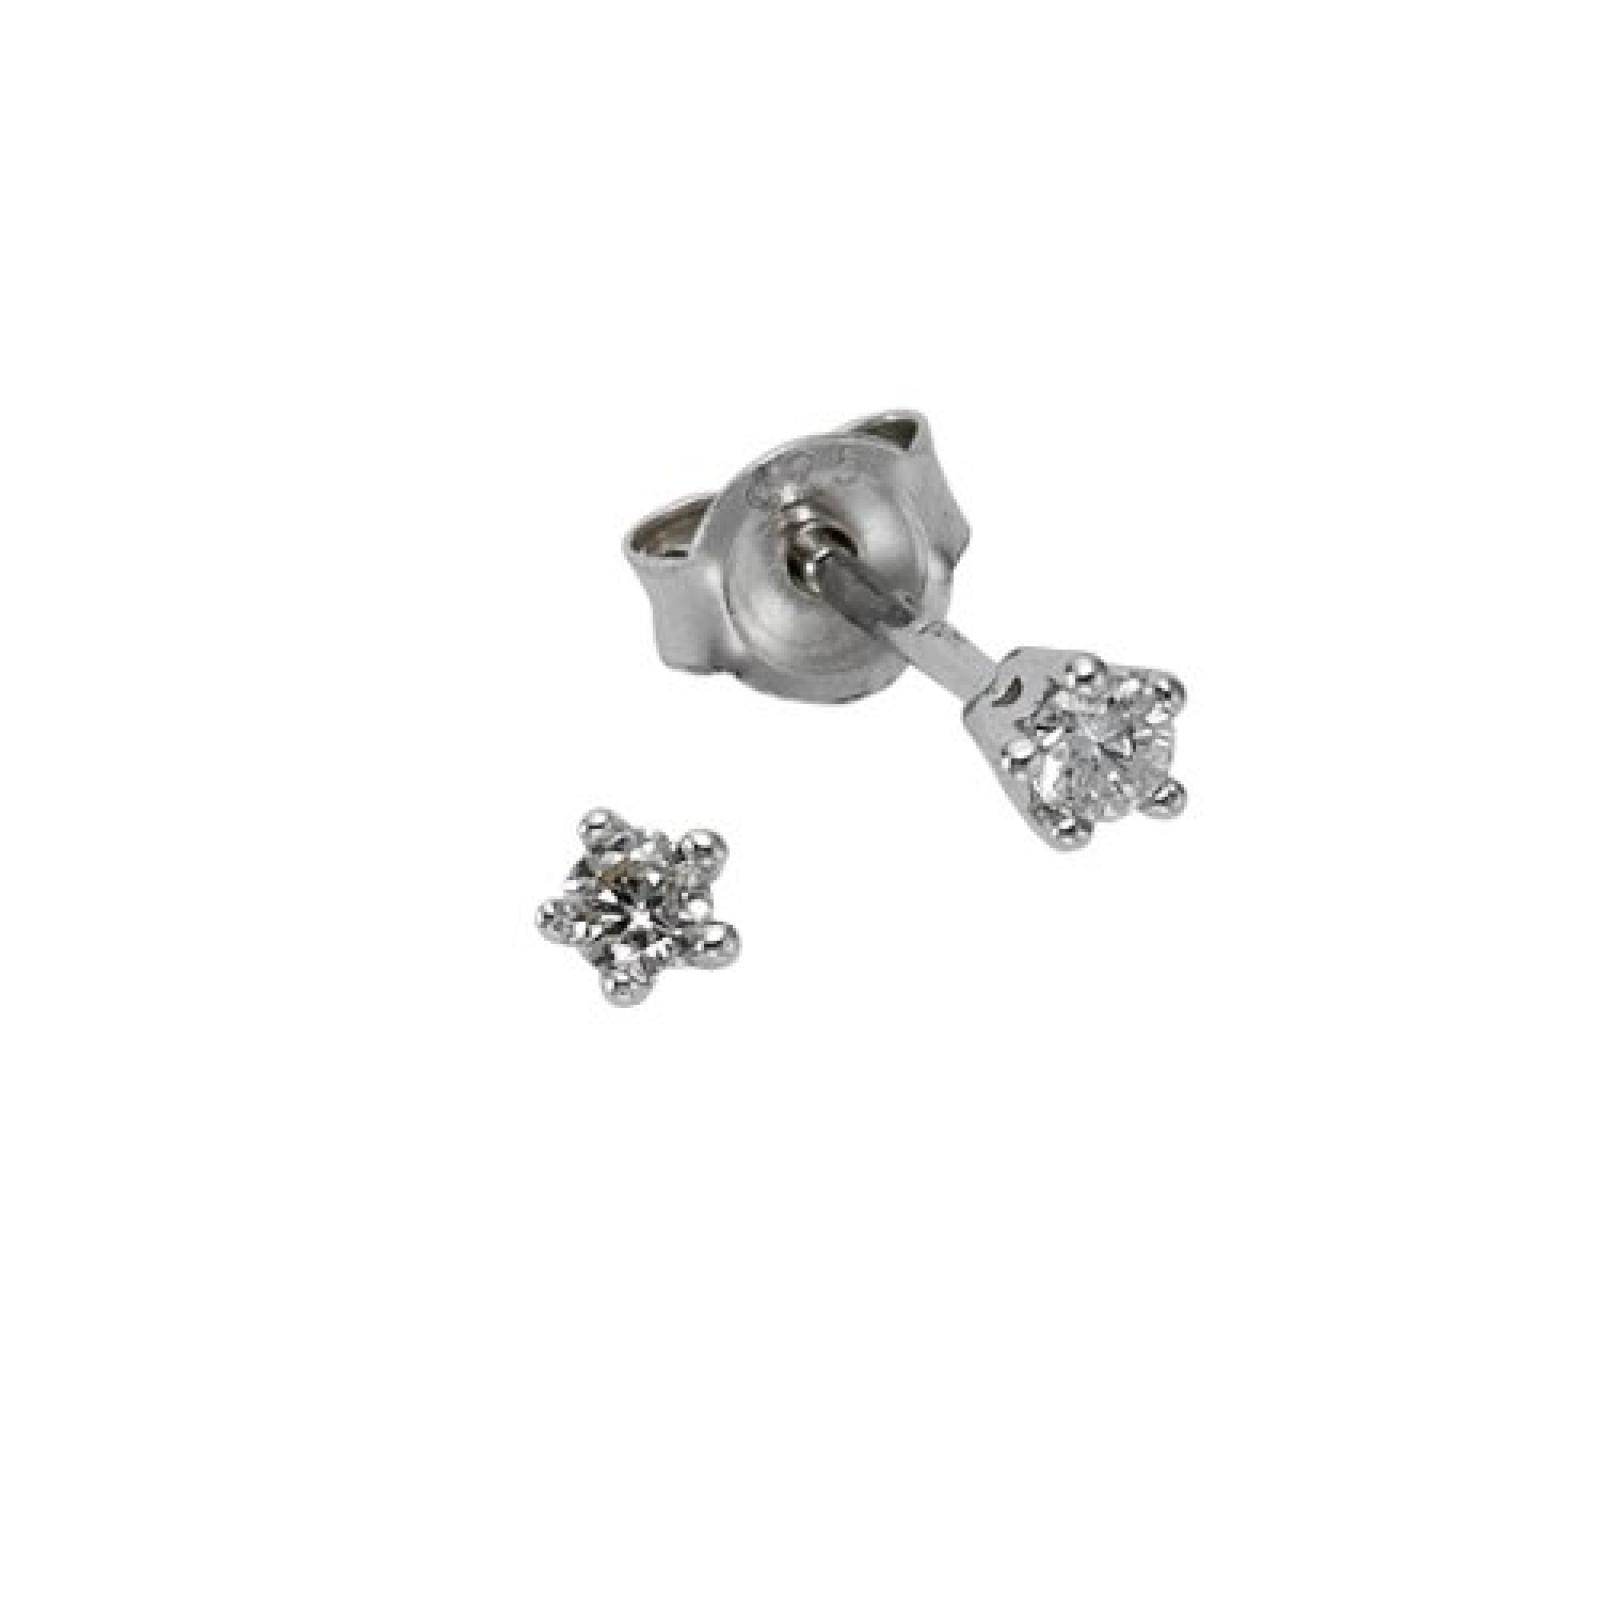 Celesta Damen-Ohrstecker 925 Sterling Silber 2 Brillanten 0,10ct. 273220554